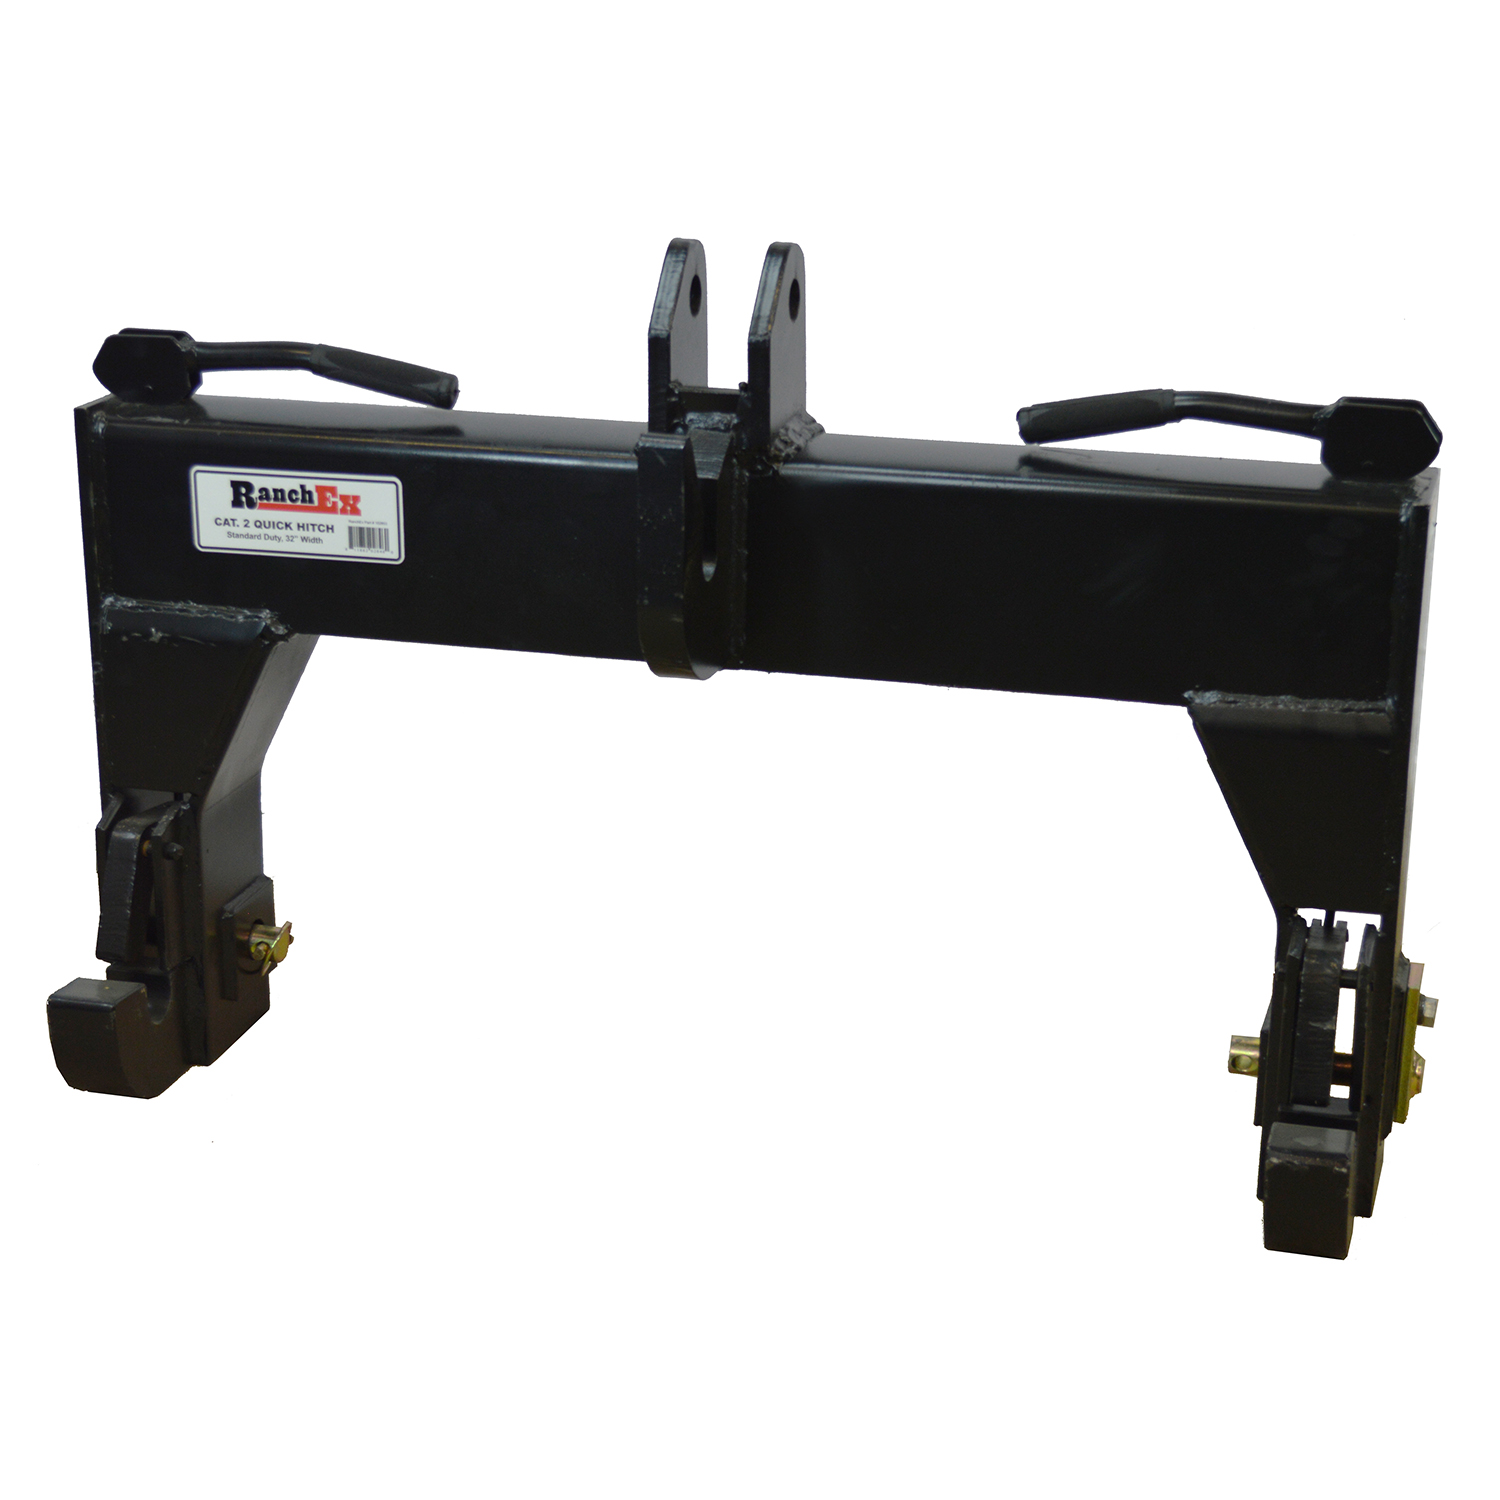 RanchEx Quick Hitch, Cat. 2, Standard